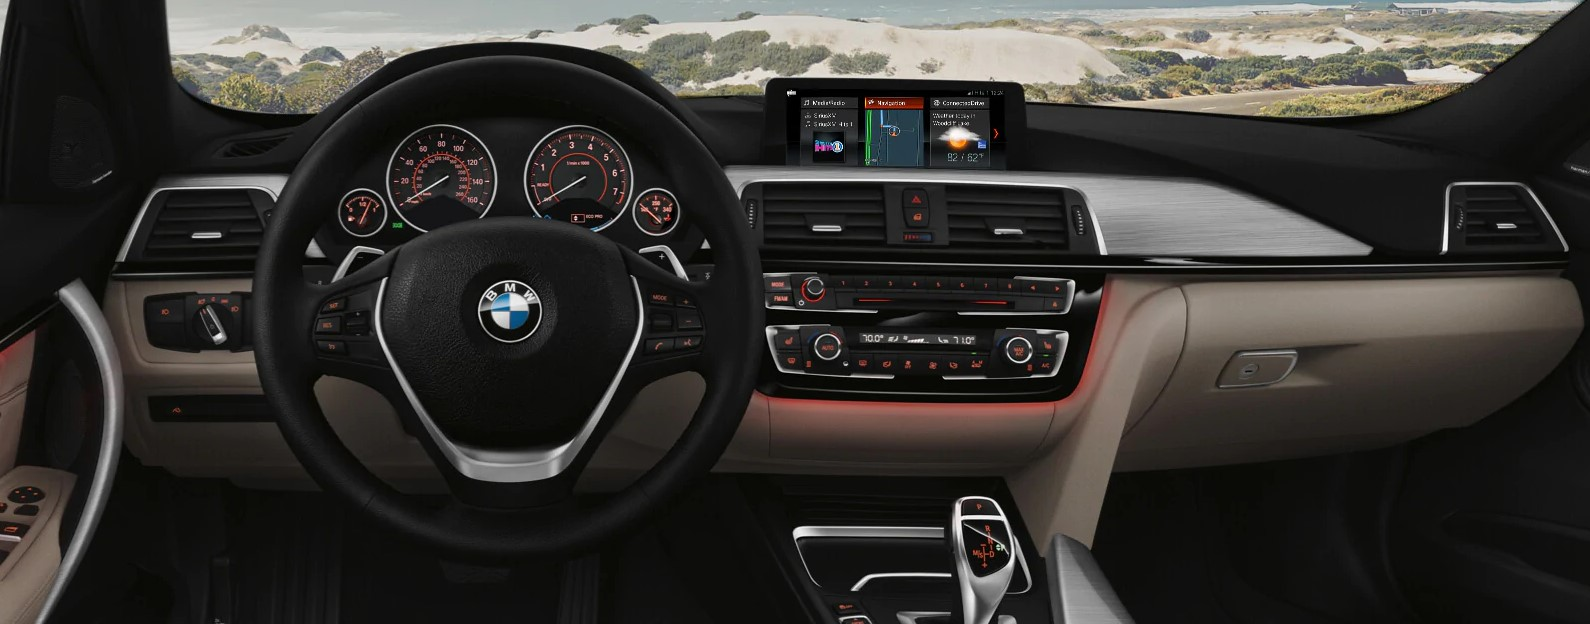 2019 BMW 3 Series Black and Tan Interior